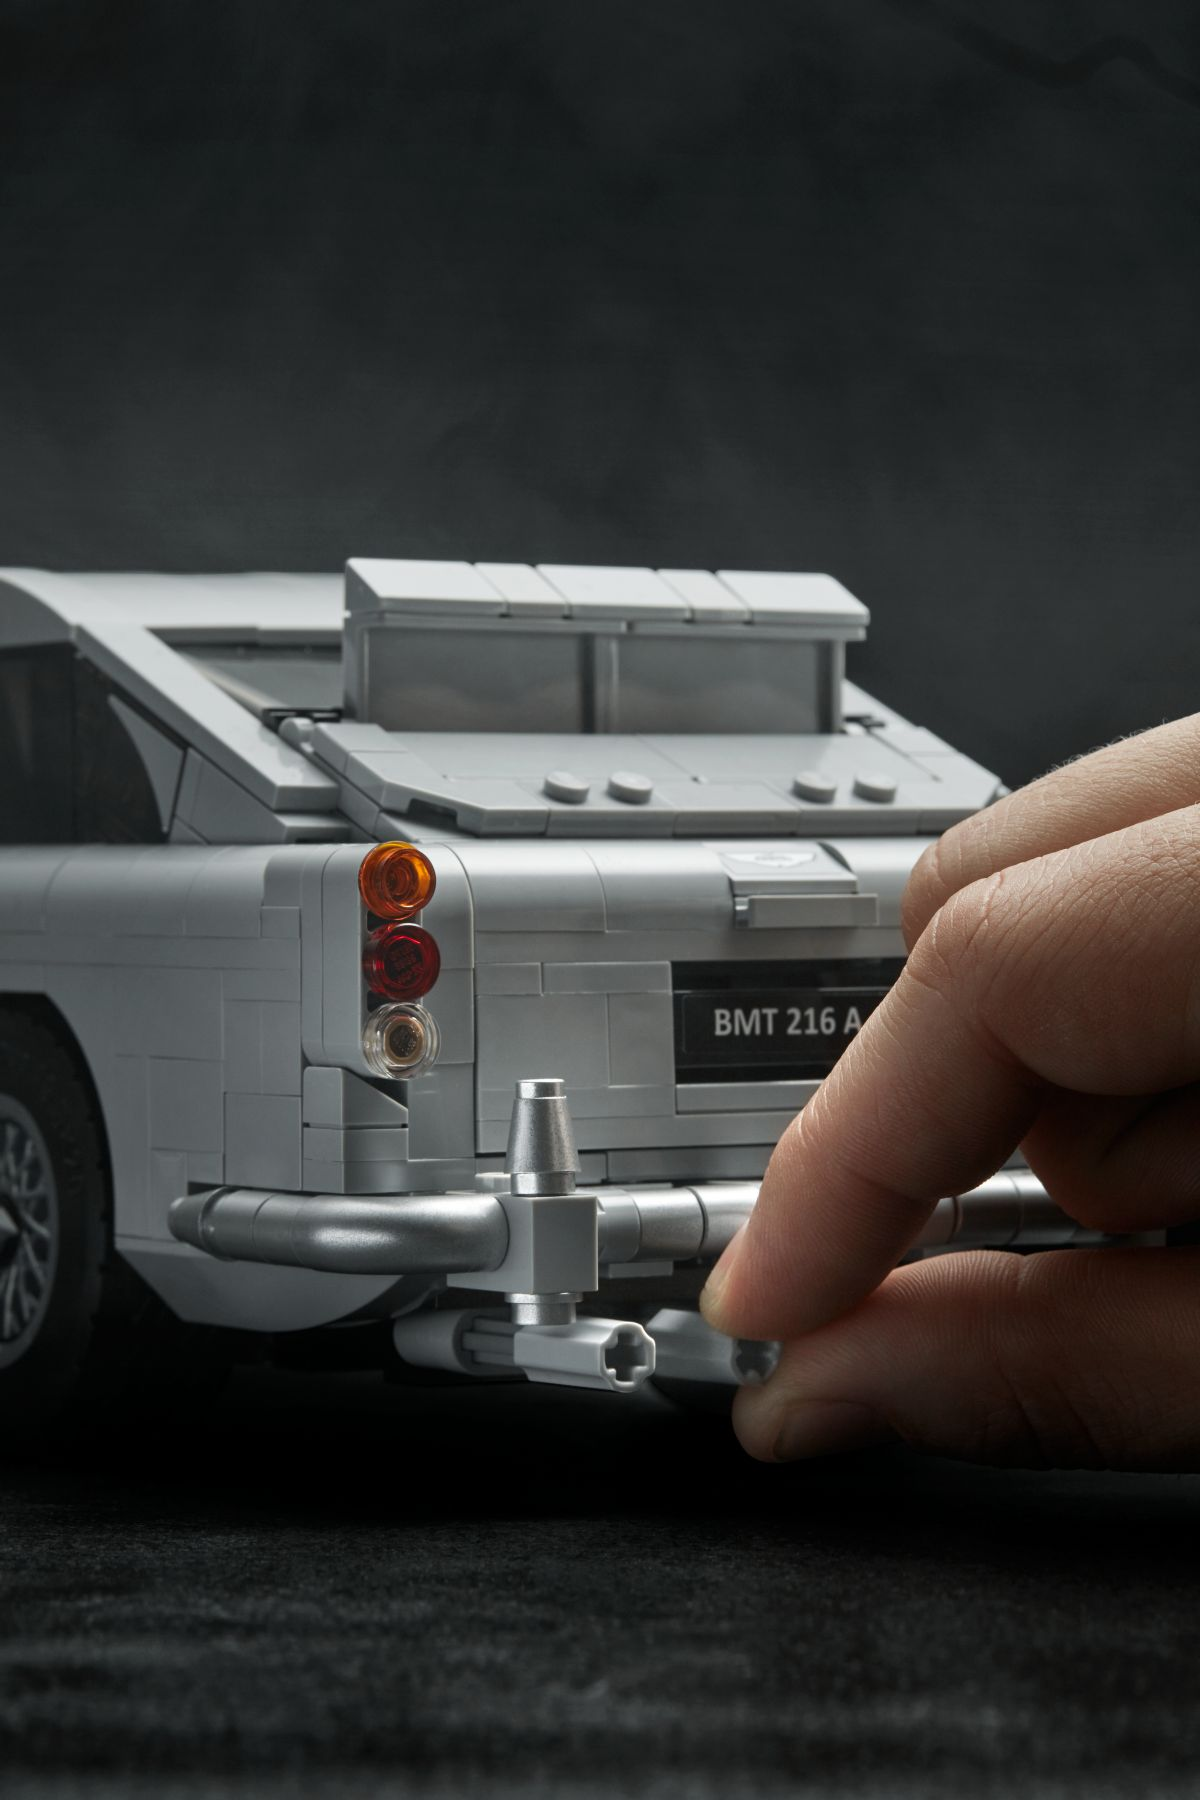 LEGO Advanced Models 10262 James Bond Aston Martin DB5 LEGO_10262_alt12.jpg